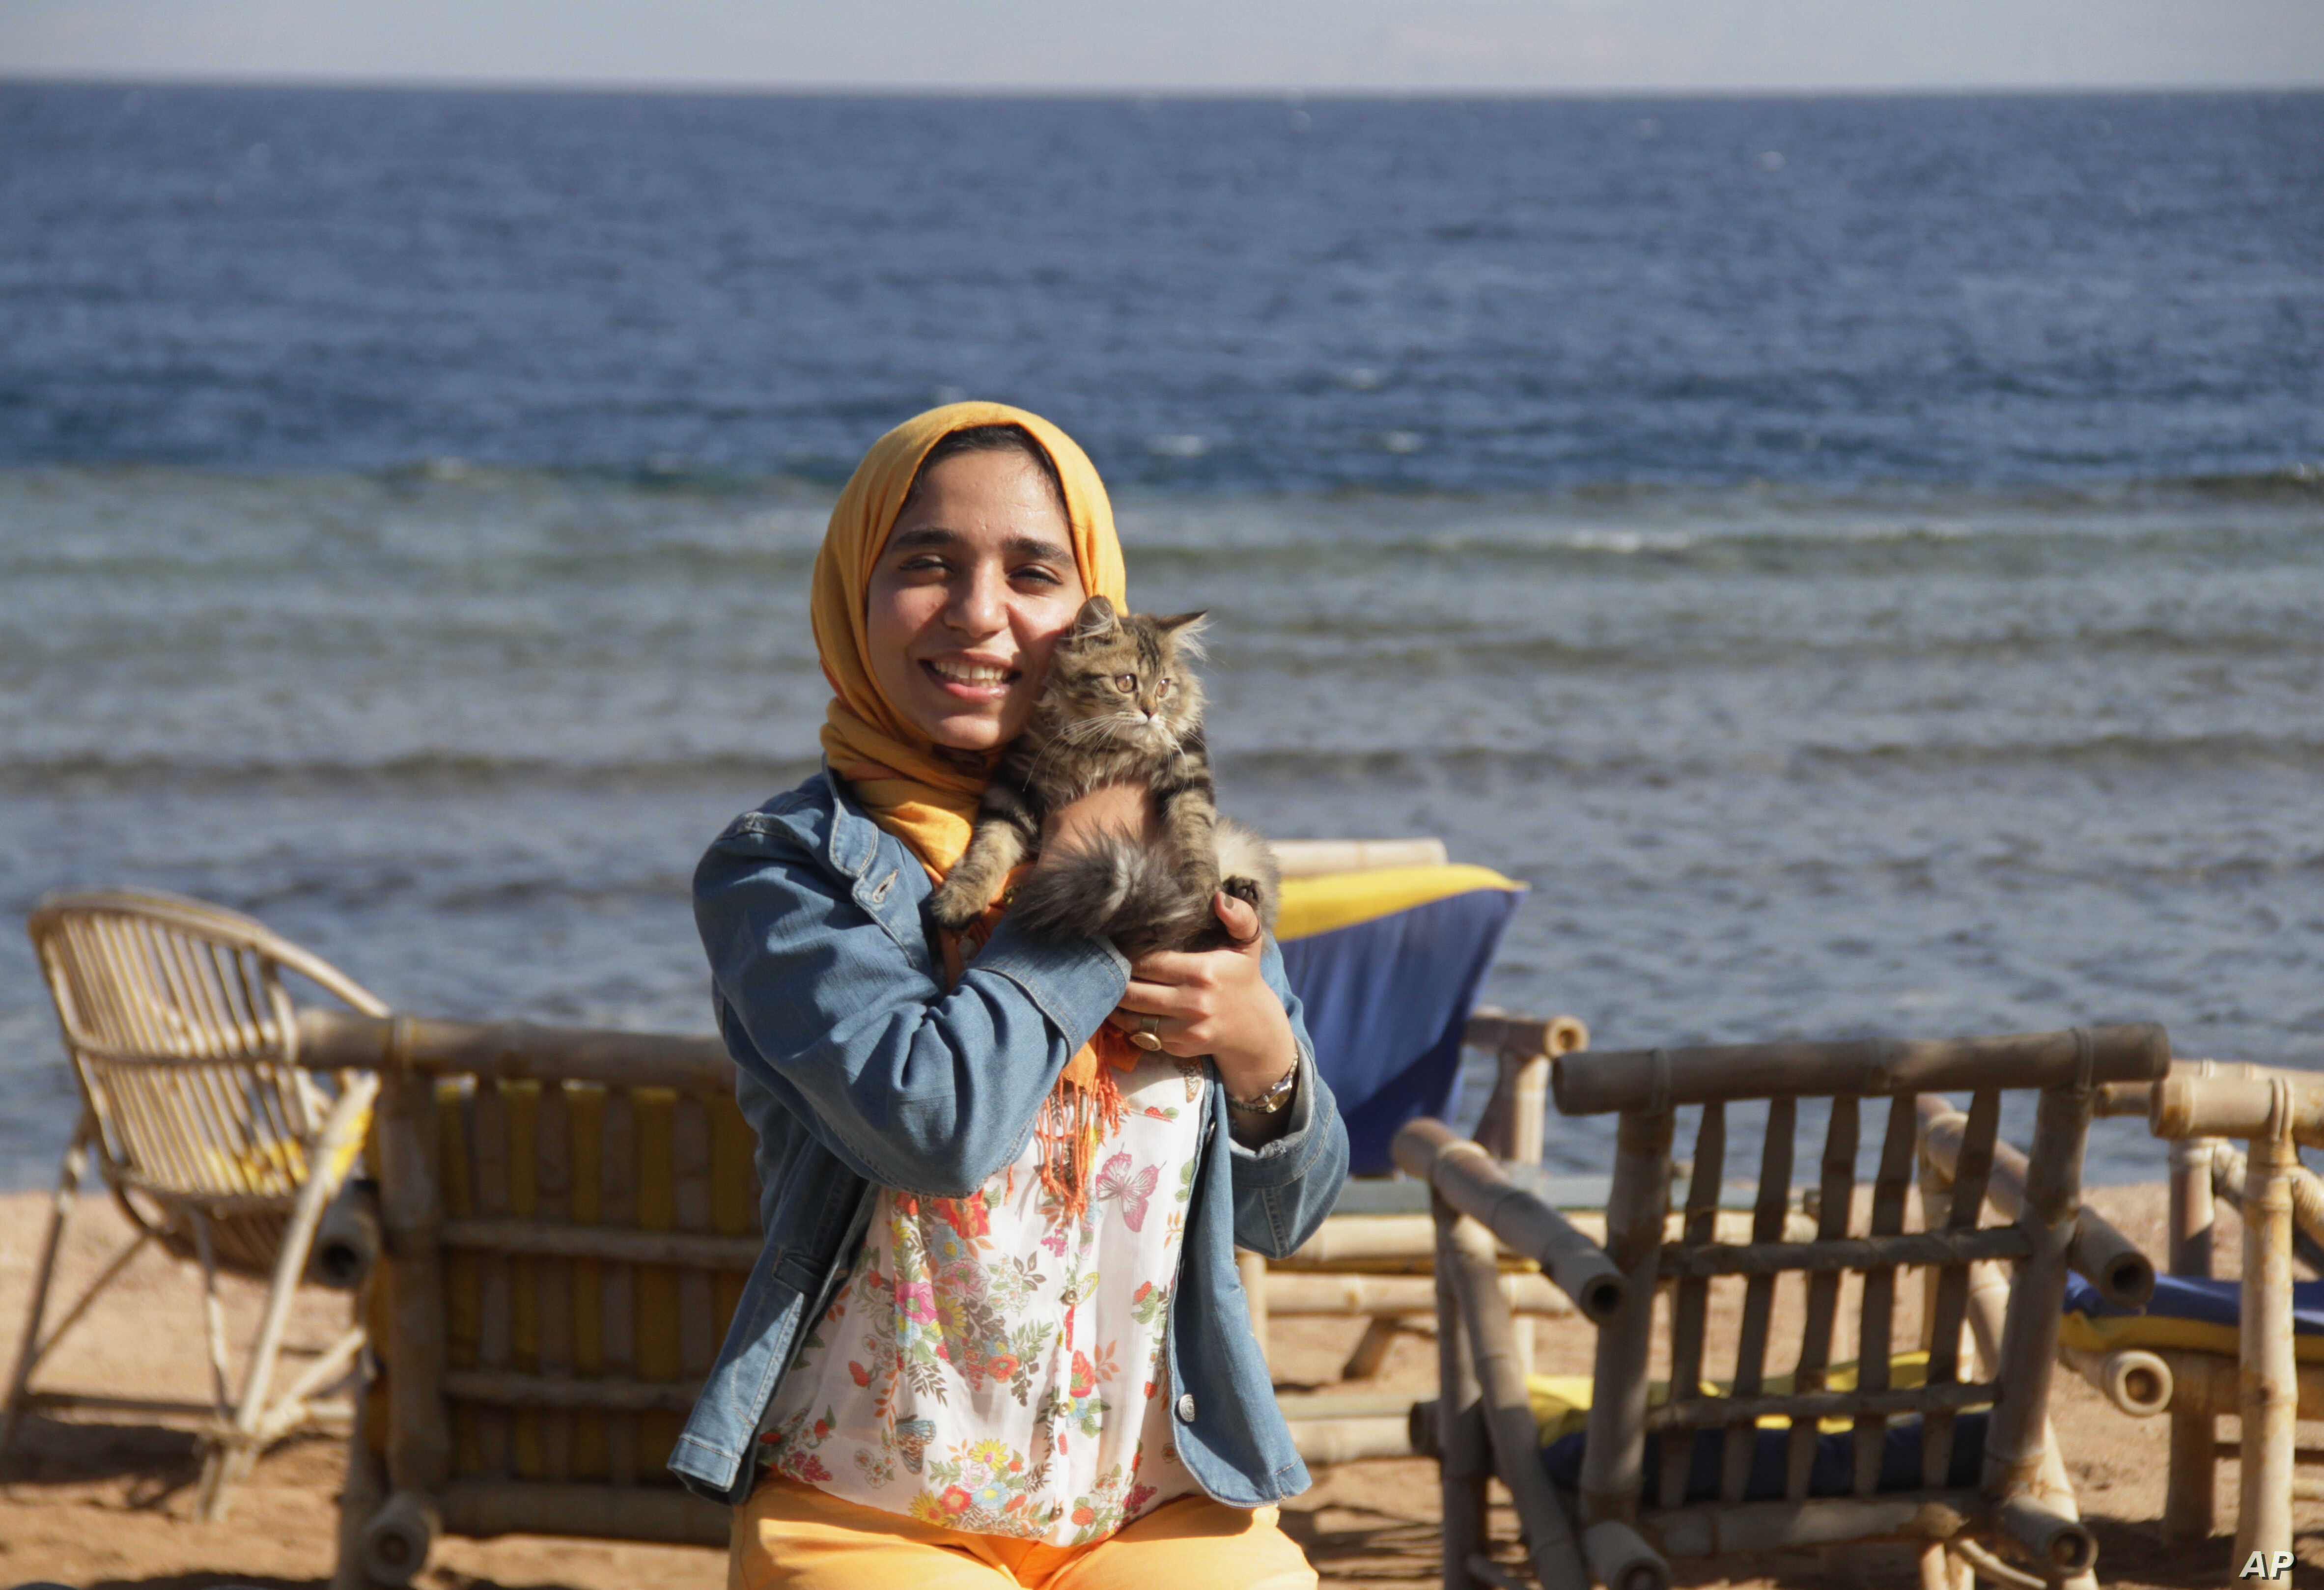 In this photo provided by el-Taweel family on Friday, Aug. 7, 2015, jailed Egyptian photographer Esraa el-Taweel poses for a photo in Egypt's Dahab beach in 2015.